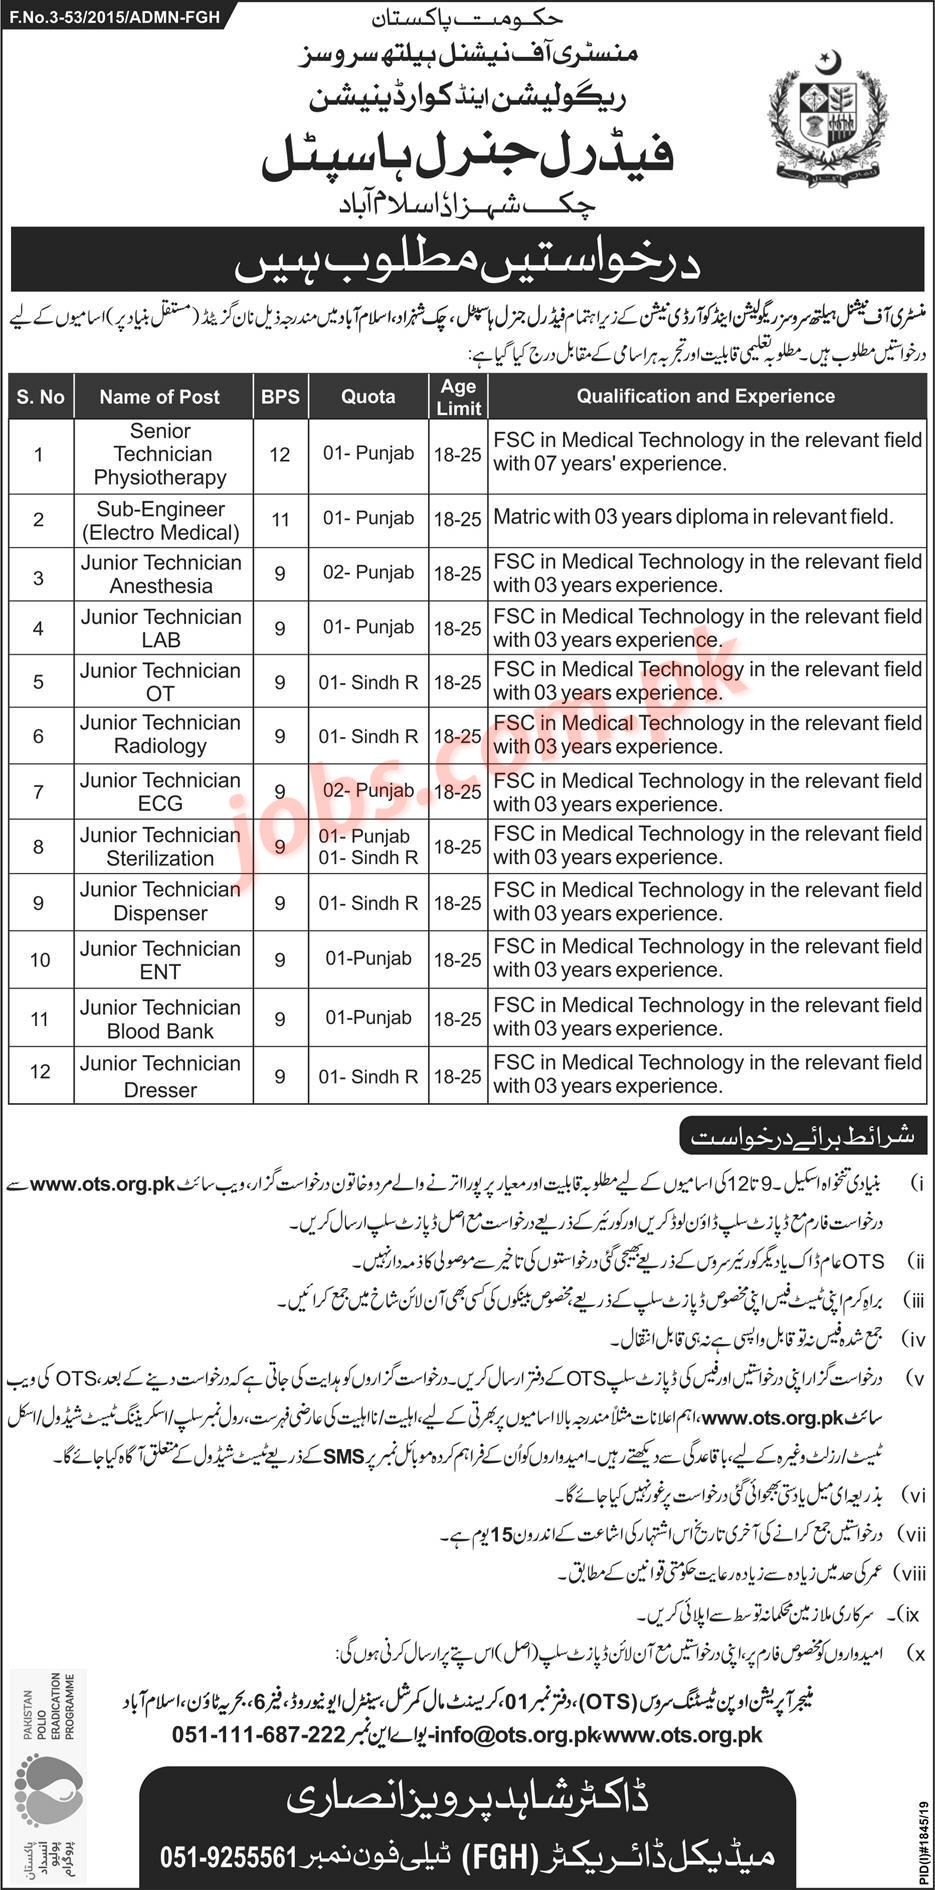 Federal General Hospital Islamabad Jobs 2019 For 15+ Sub-Engineer & Junior Technicians (OTS Application Form)